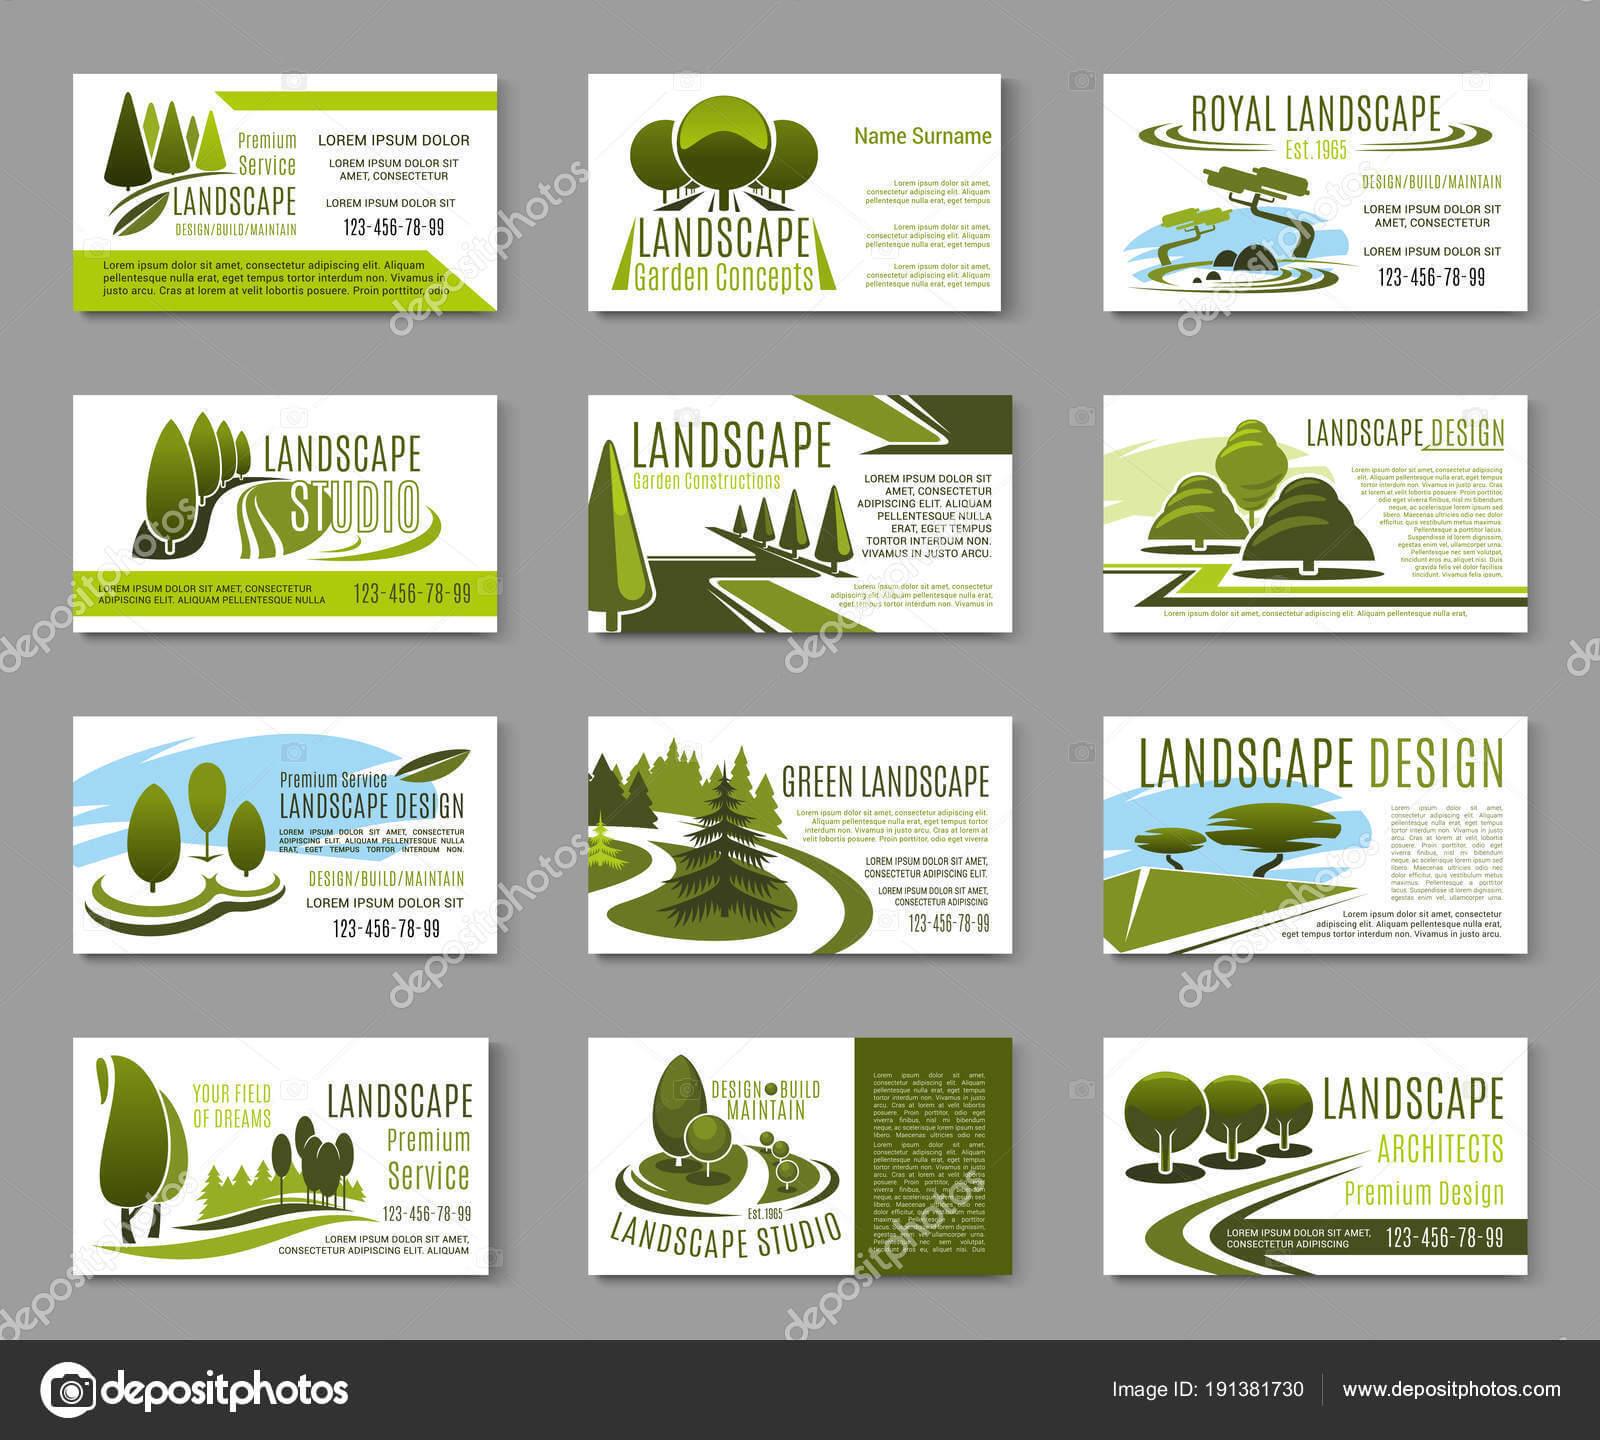 Landscape Design Business Cards | Landscape Design Studio For Landscaping Business Card Template